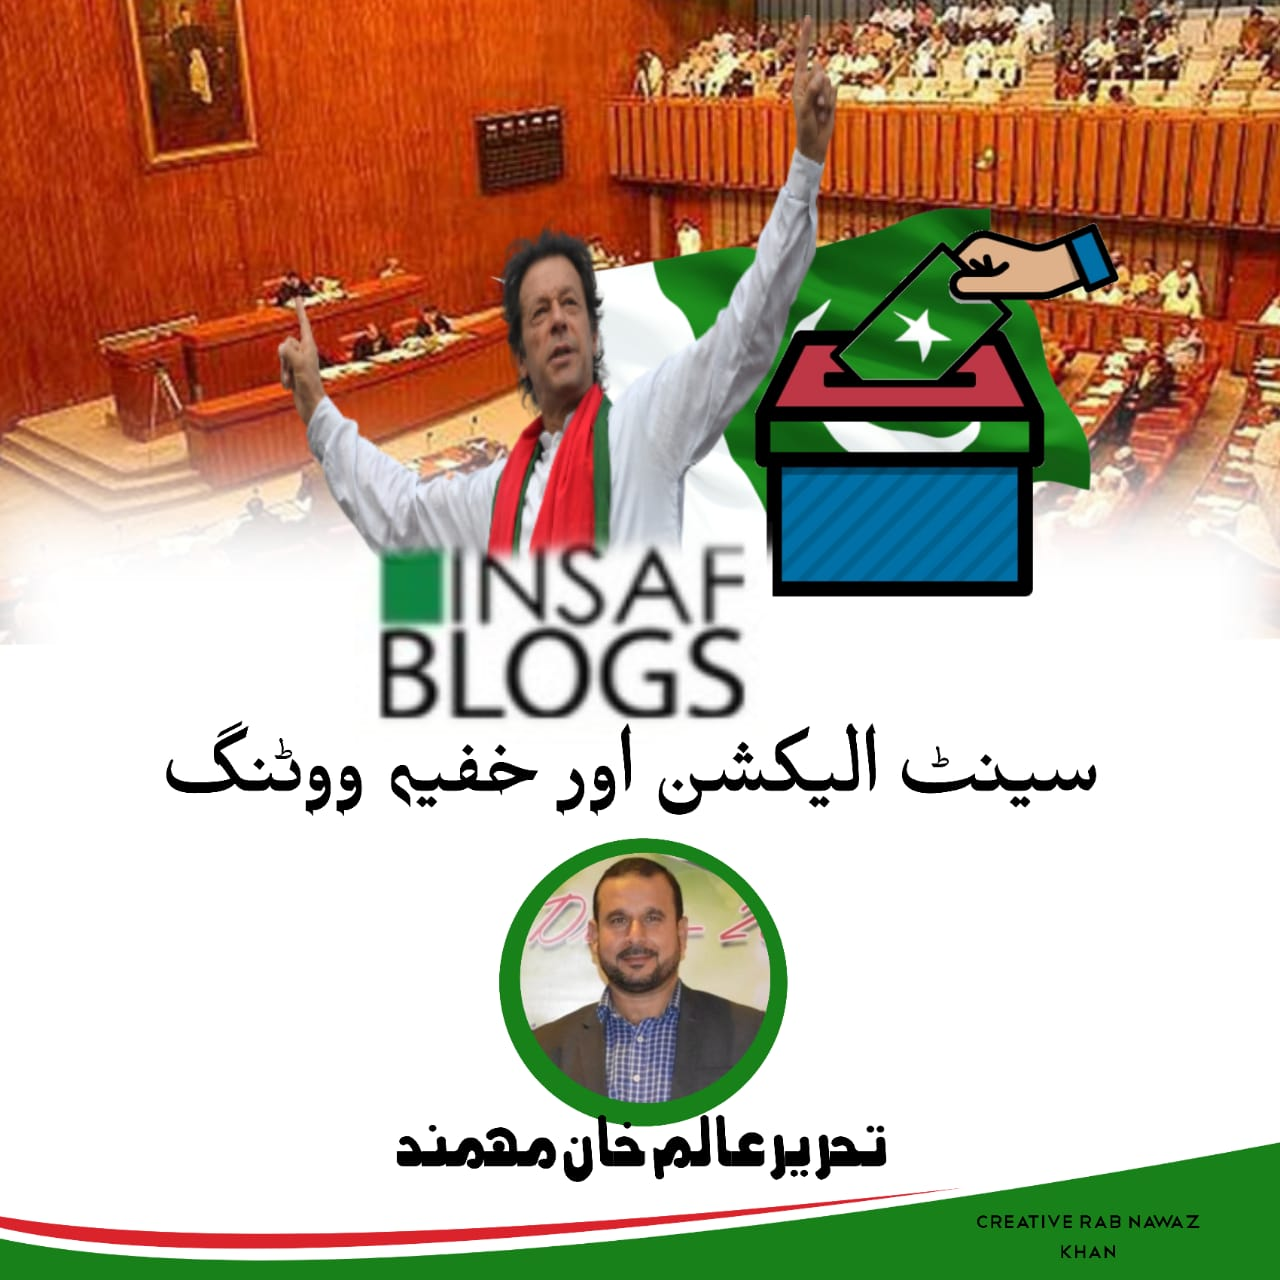 Senate Election and Secret Balloting - Insaf Blog